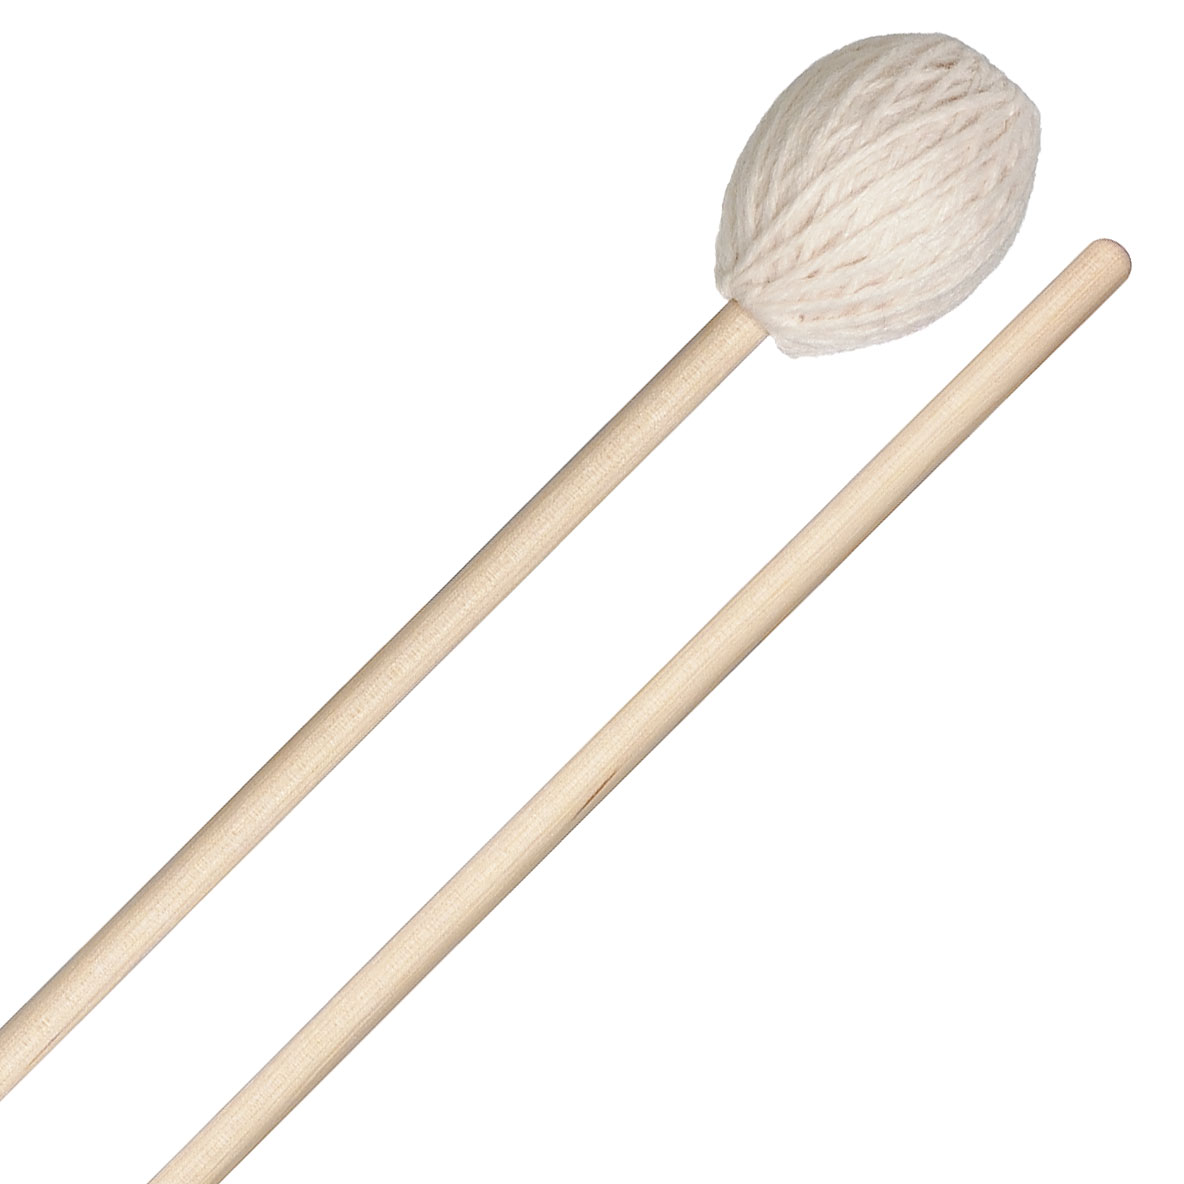 Vic Firth Gifford Howarth Signature Soft Yarn Marimba Mallets